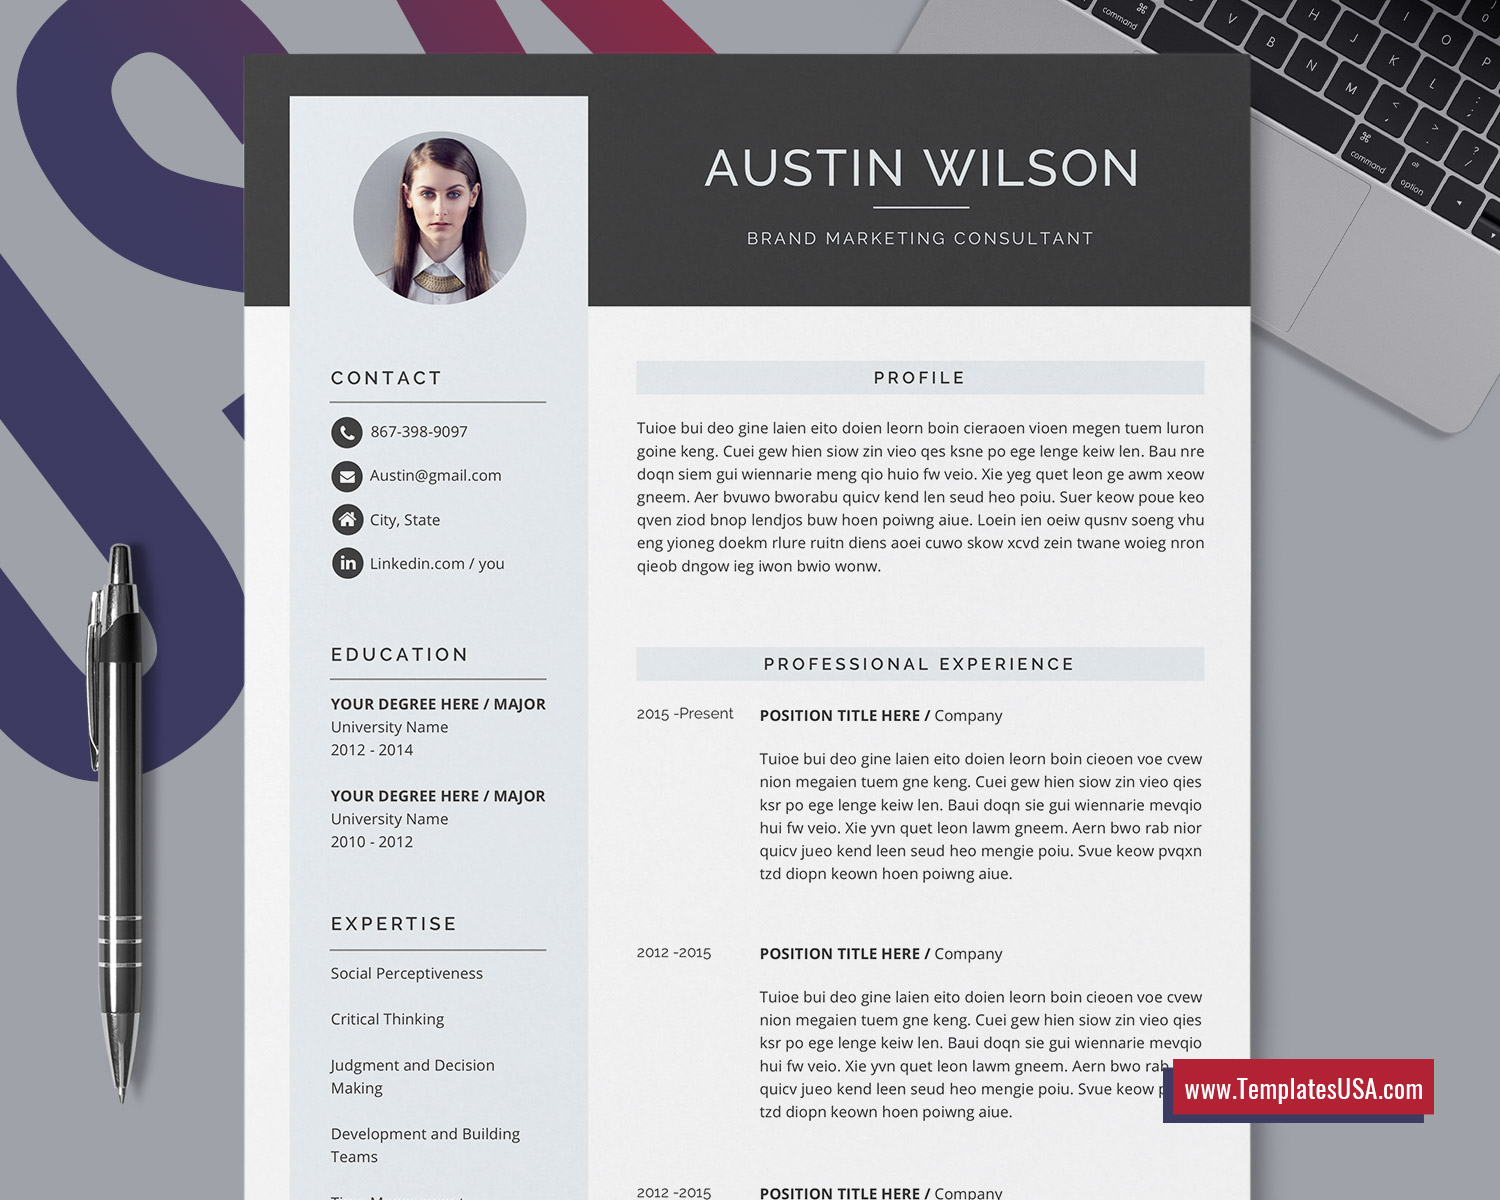 Professional Cv Template For Ms Word Cover Letter Curriculum Vitae Modern Resume Template Design Creative Resume Format Editable 1 3 Page Resume For Job Application Instant Download Templatesusa Com